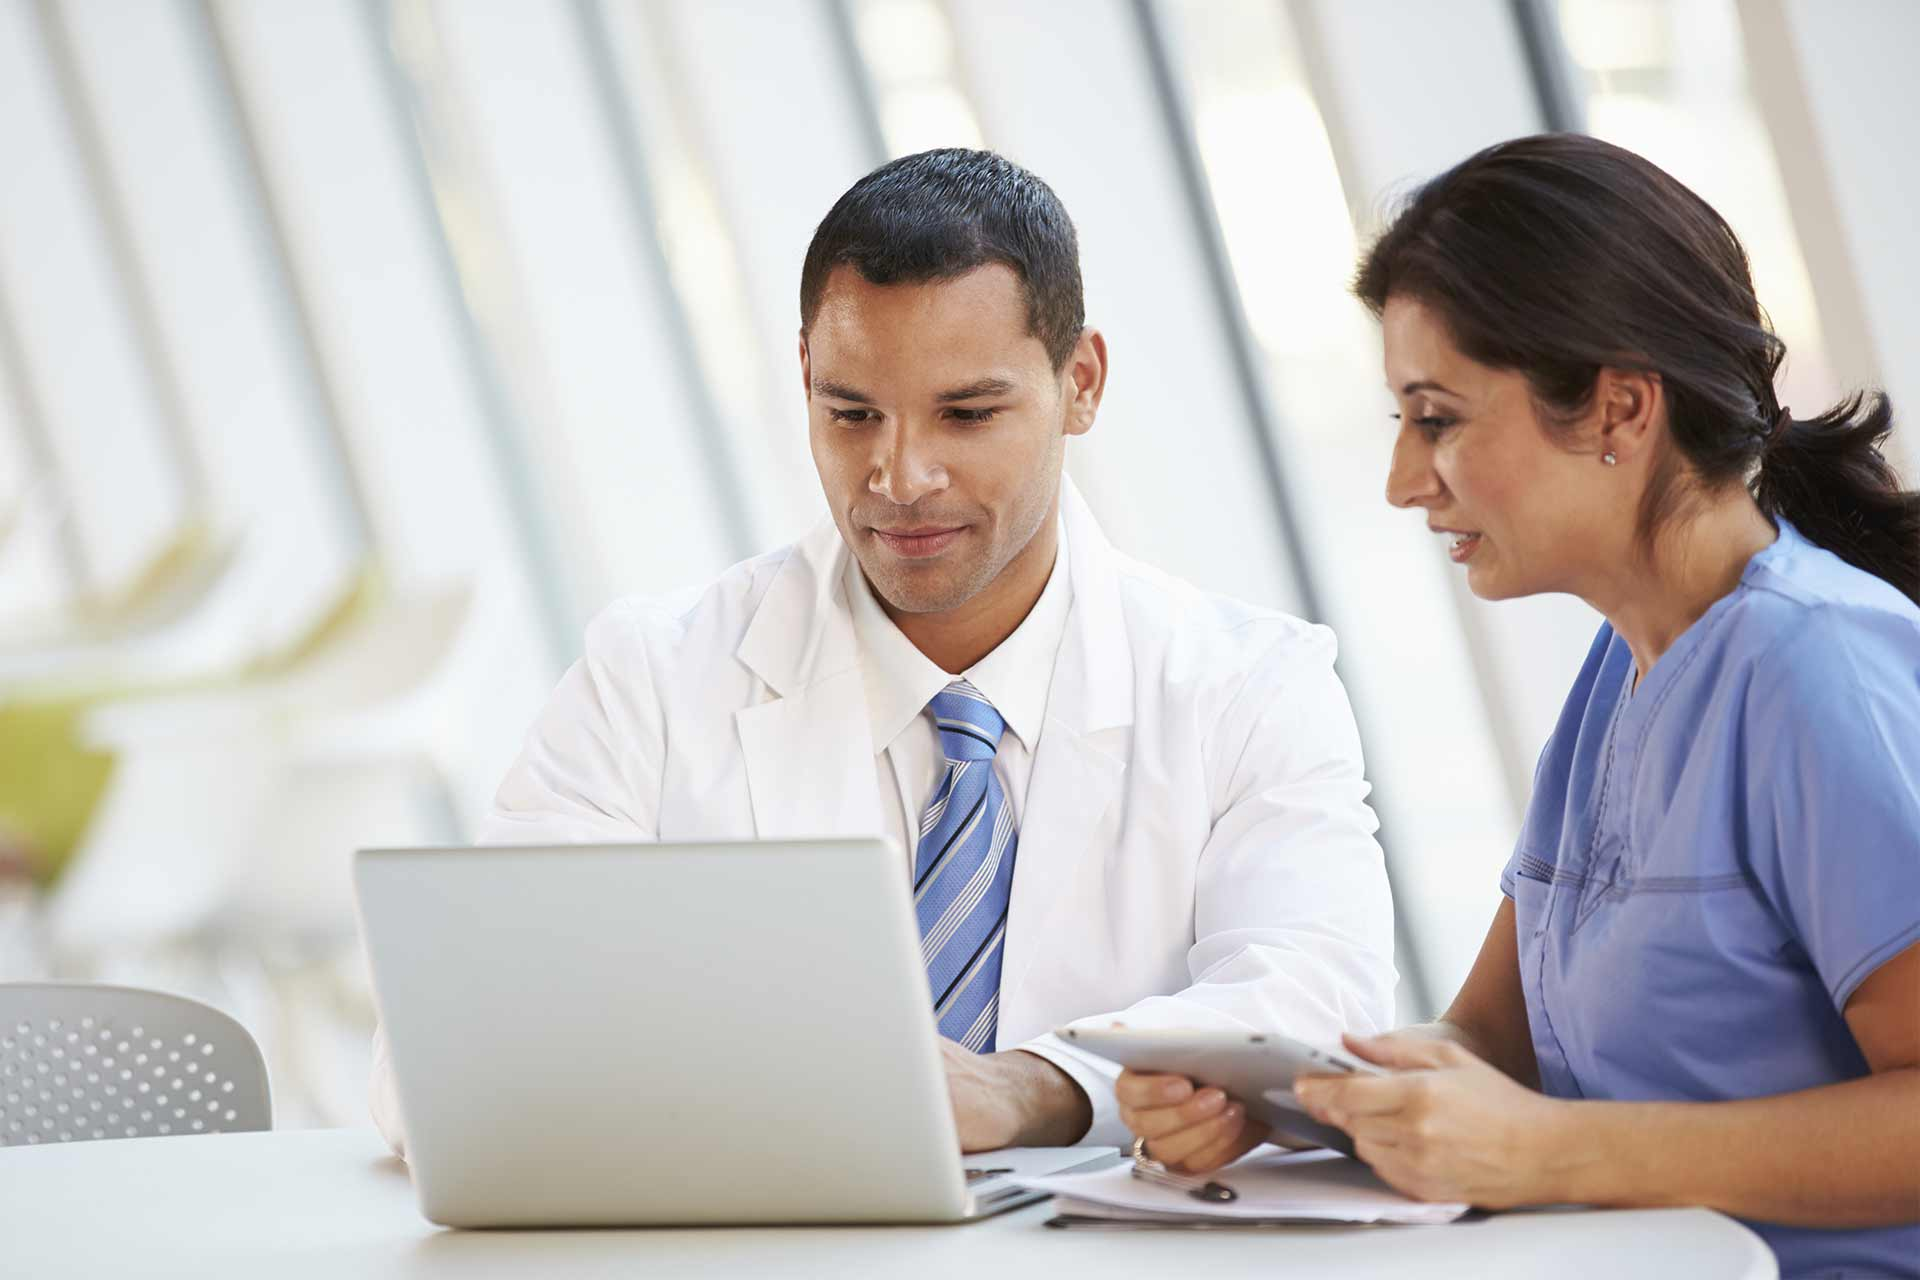 clinician-reviewing-laptop-in-hospitals